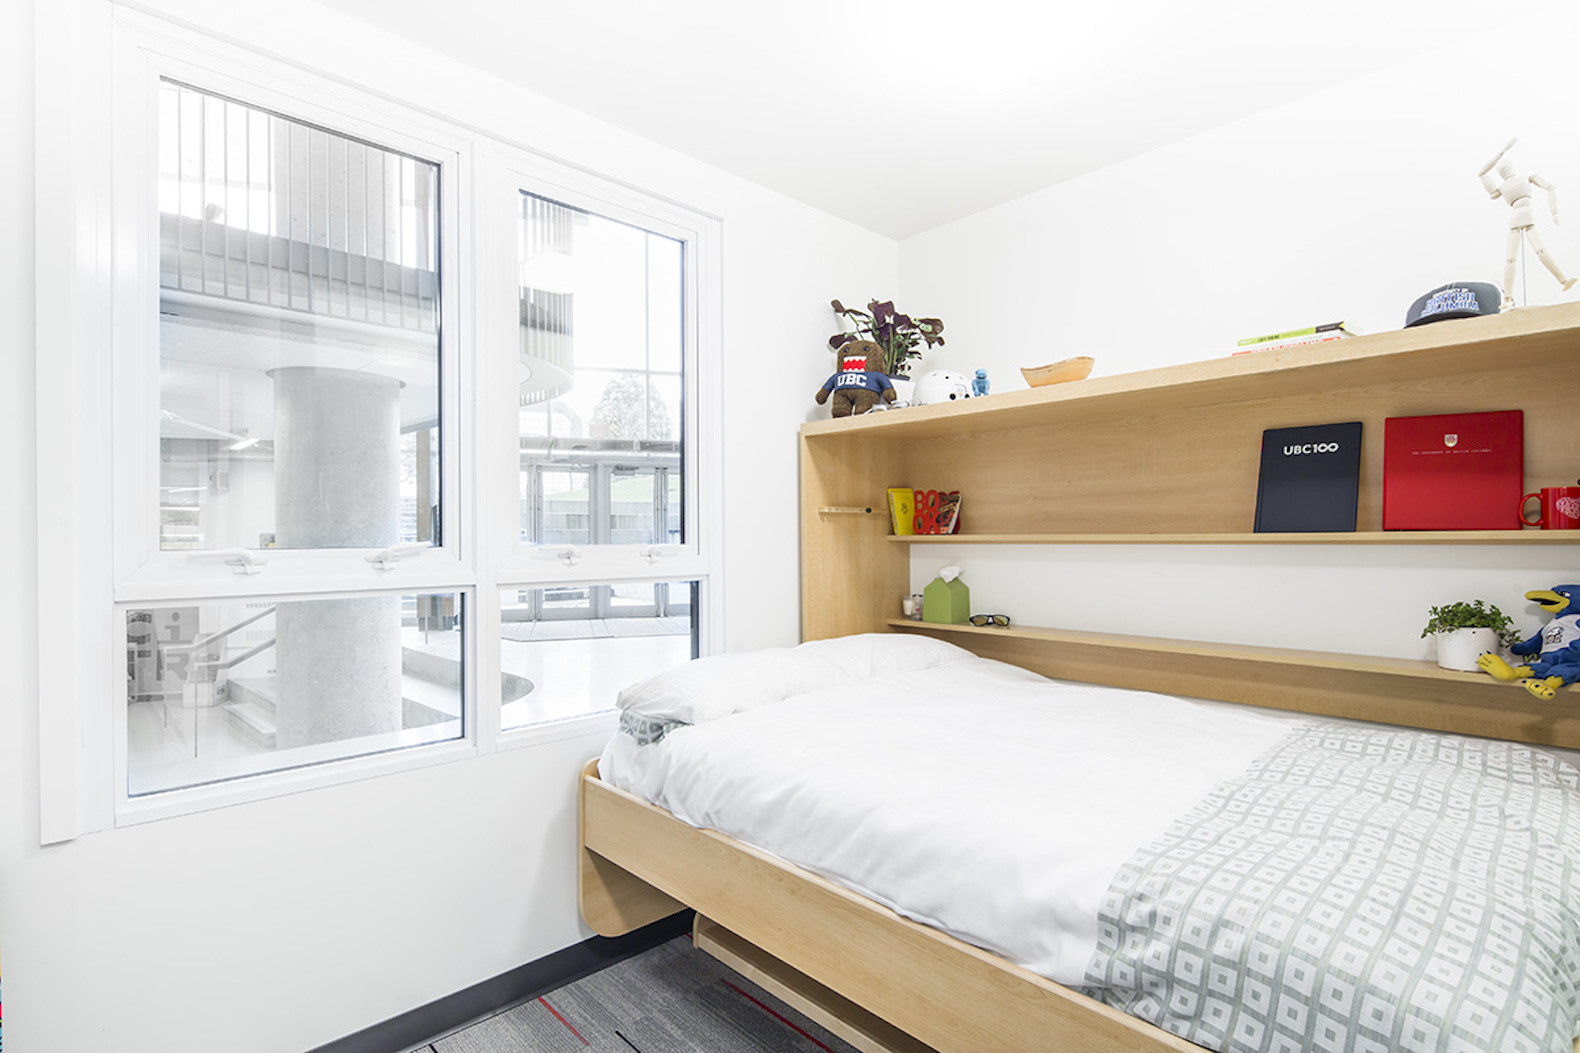 student apartment smallest new york apartments. UBC s Nano Studios to offer affordable micro apartments for under  700 a month Micro Apartments Inhabitat Green Design Innovation